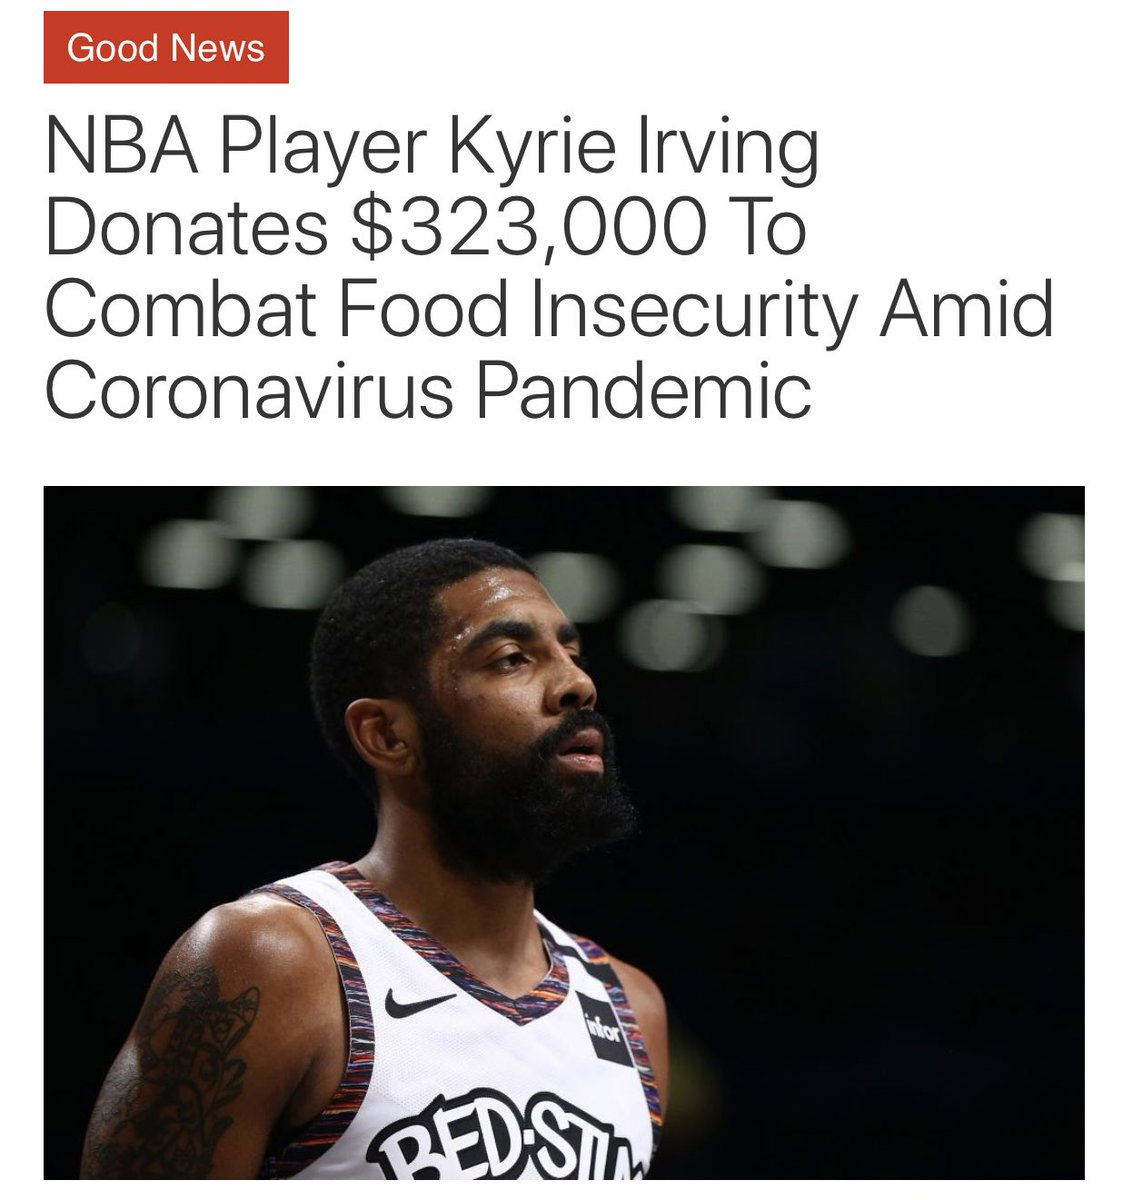 Kyrie Andrew Irving 🔥 https://t.co/IWtVSaMhQm